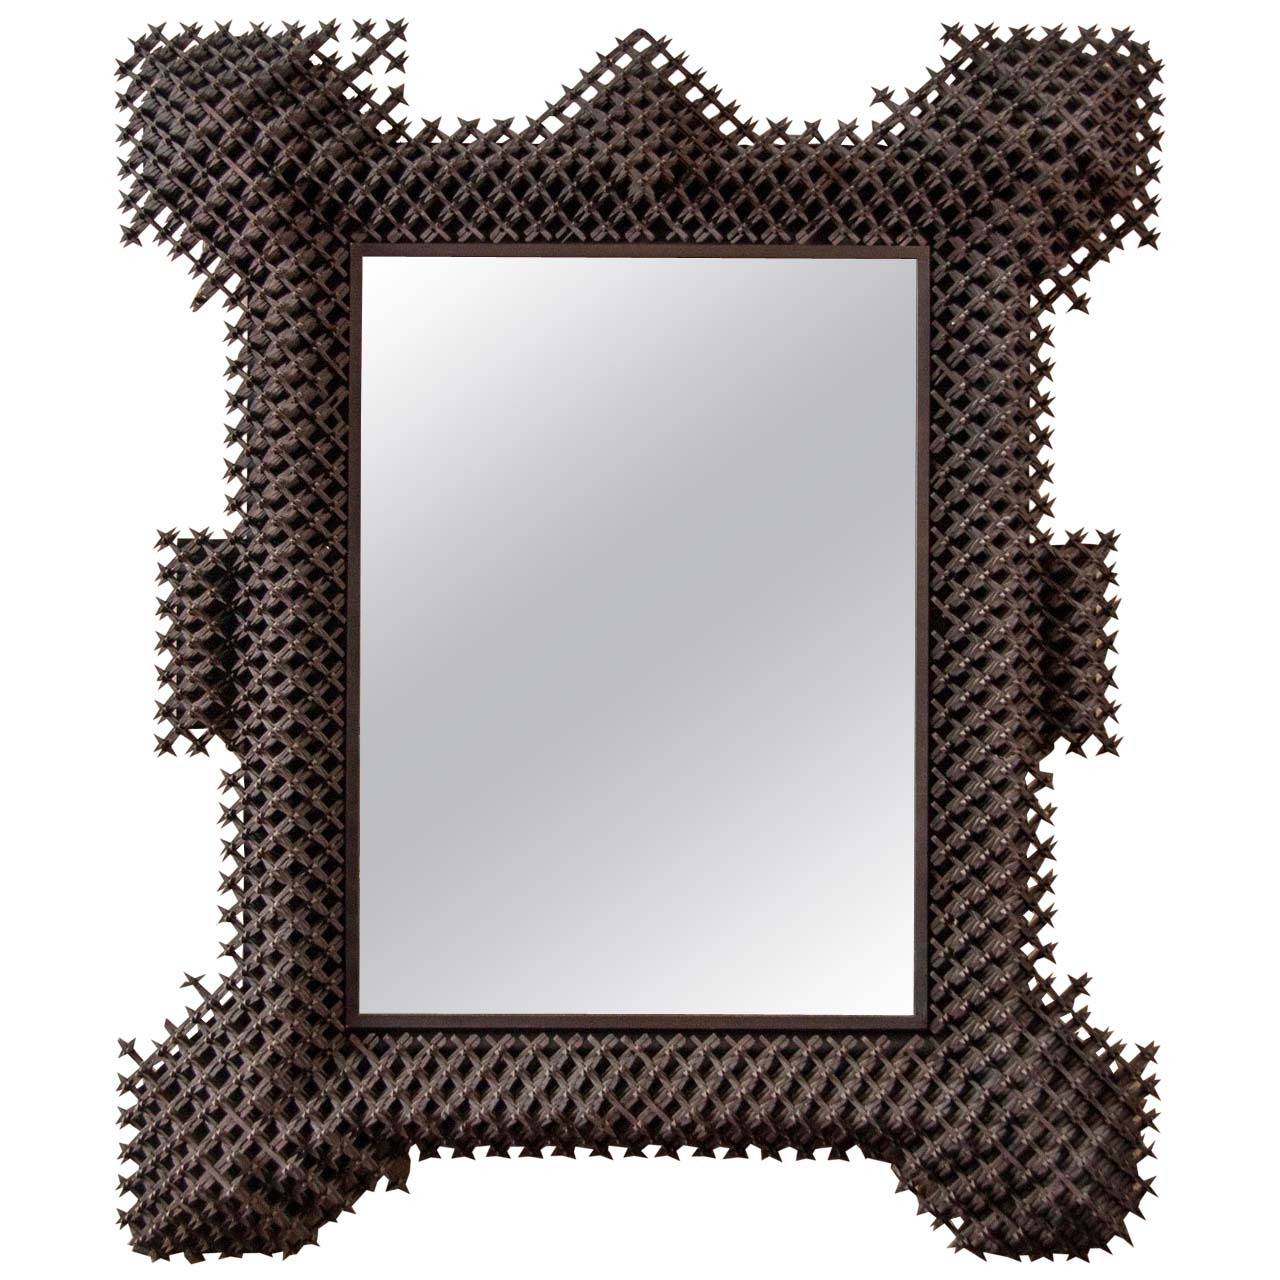 Wall Art With Mirror Frame : Tramp art framed mirror at stdibs